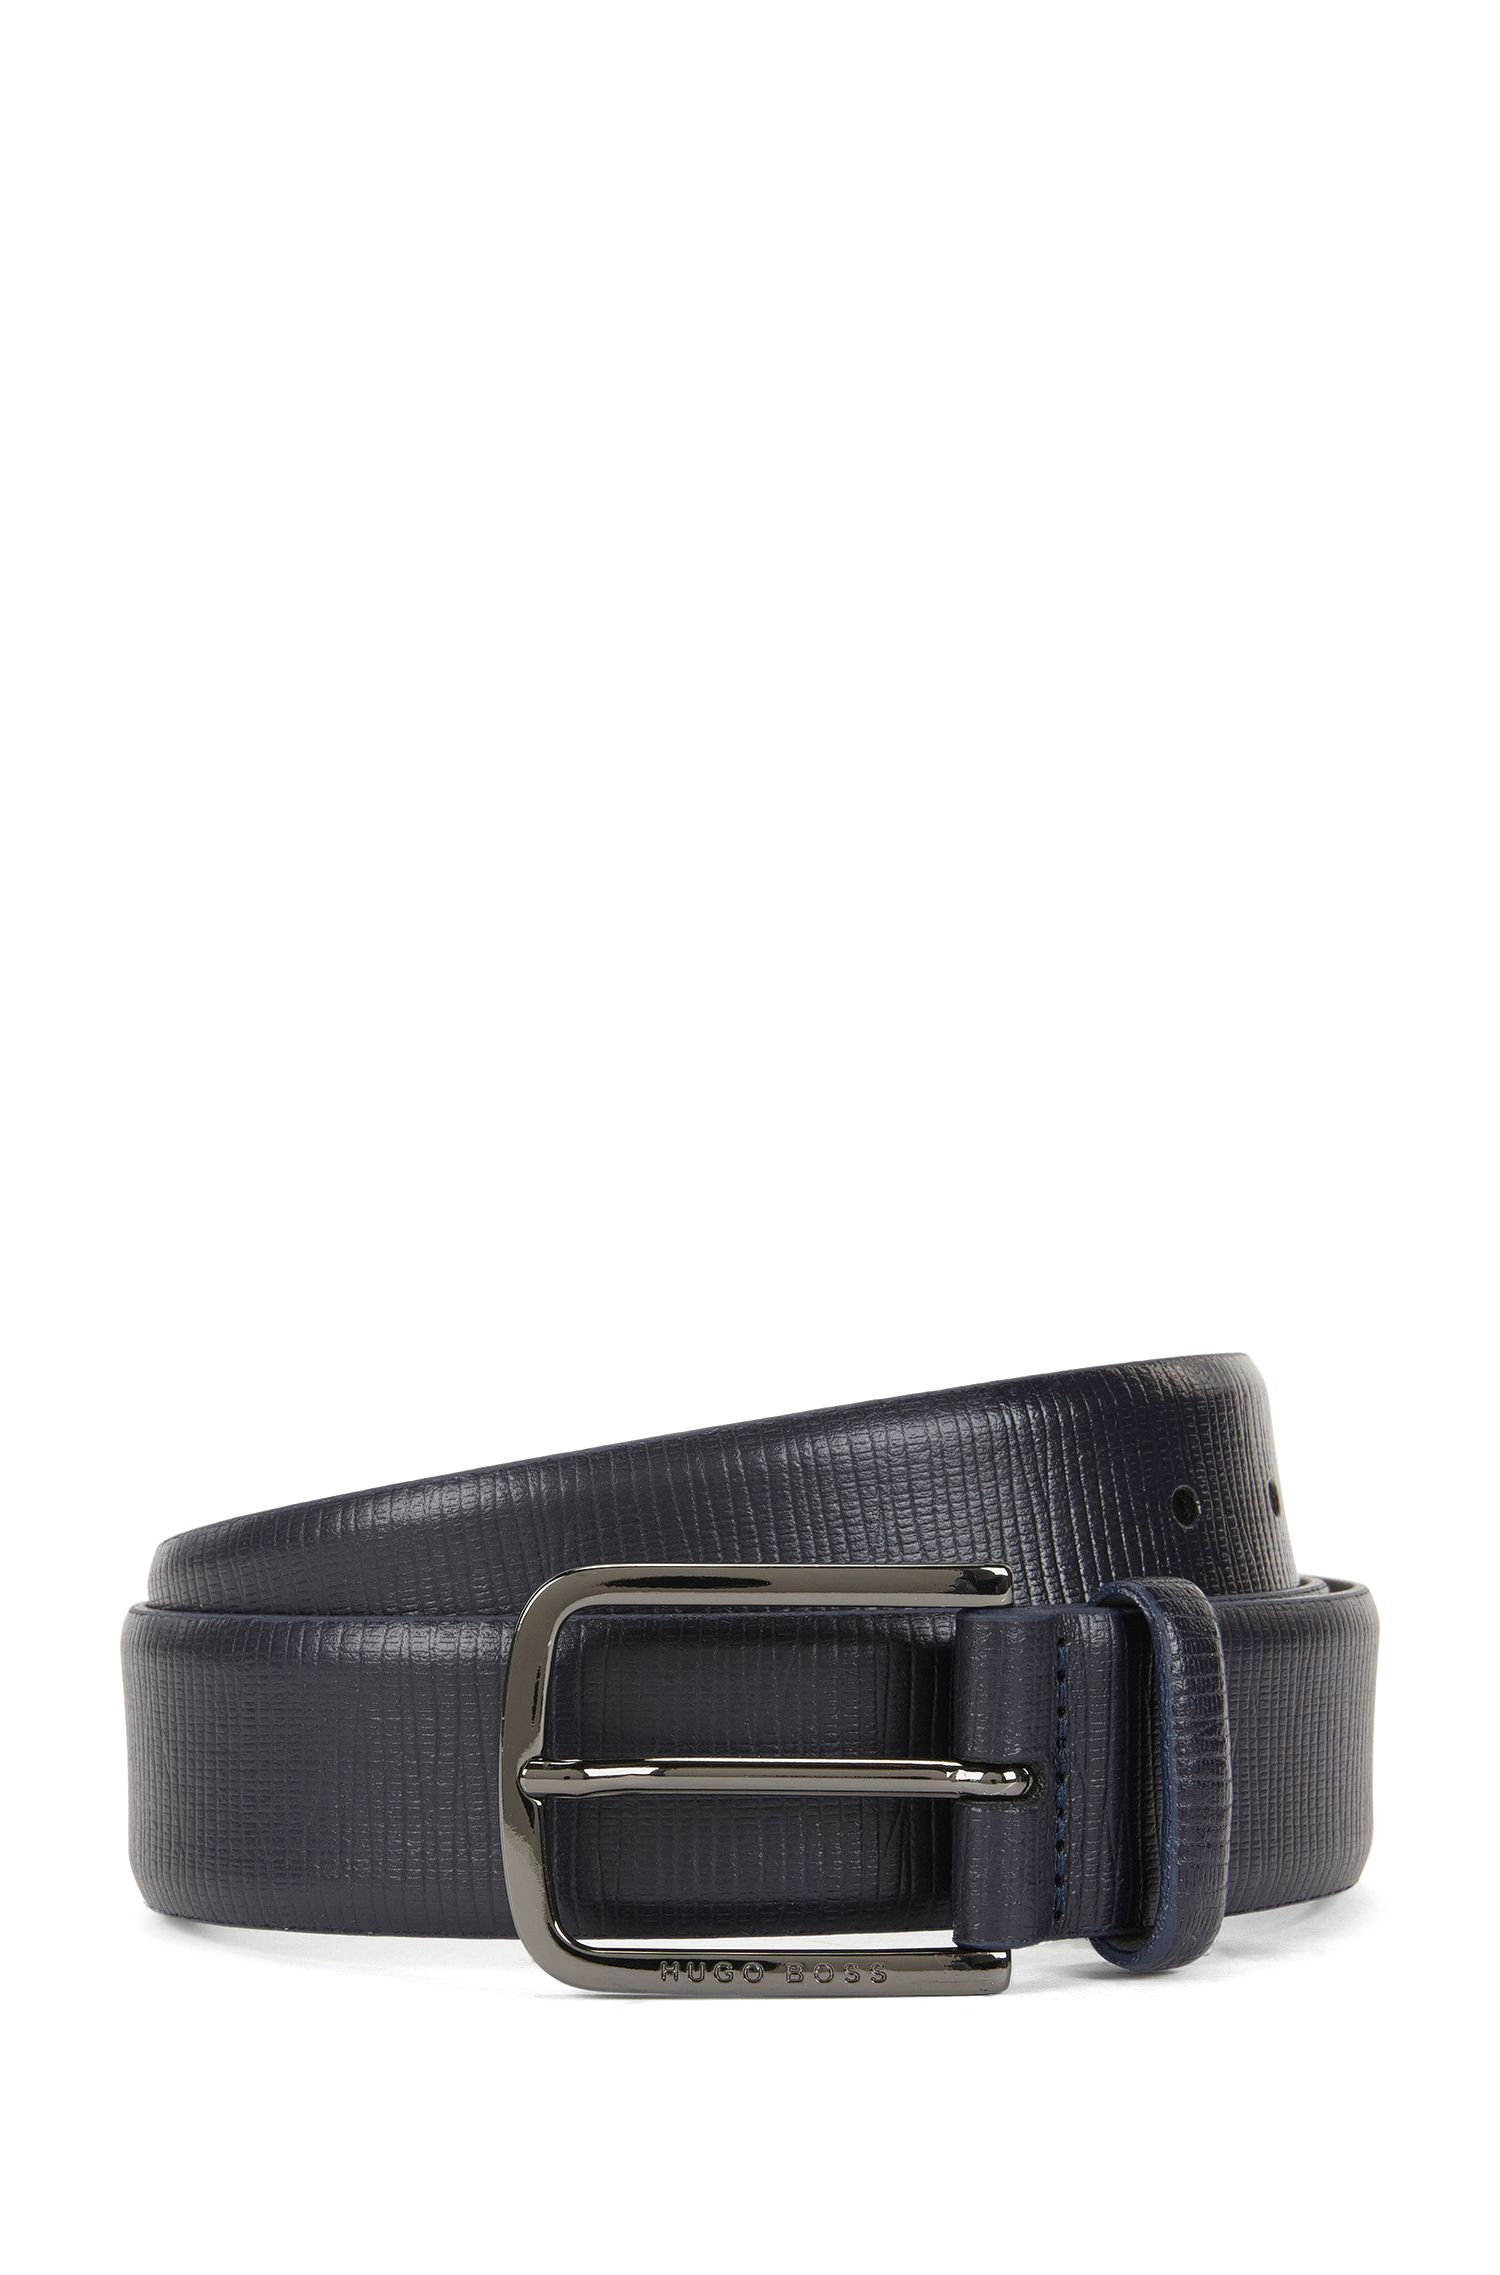 Embossed leather belt with gunmetal hardware